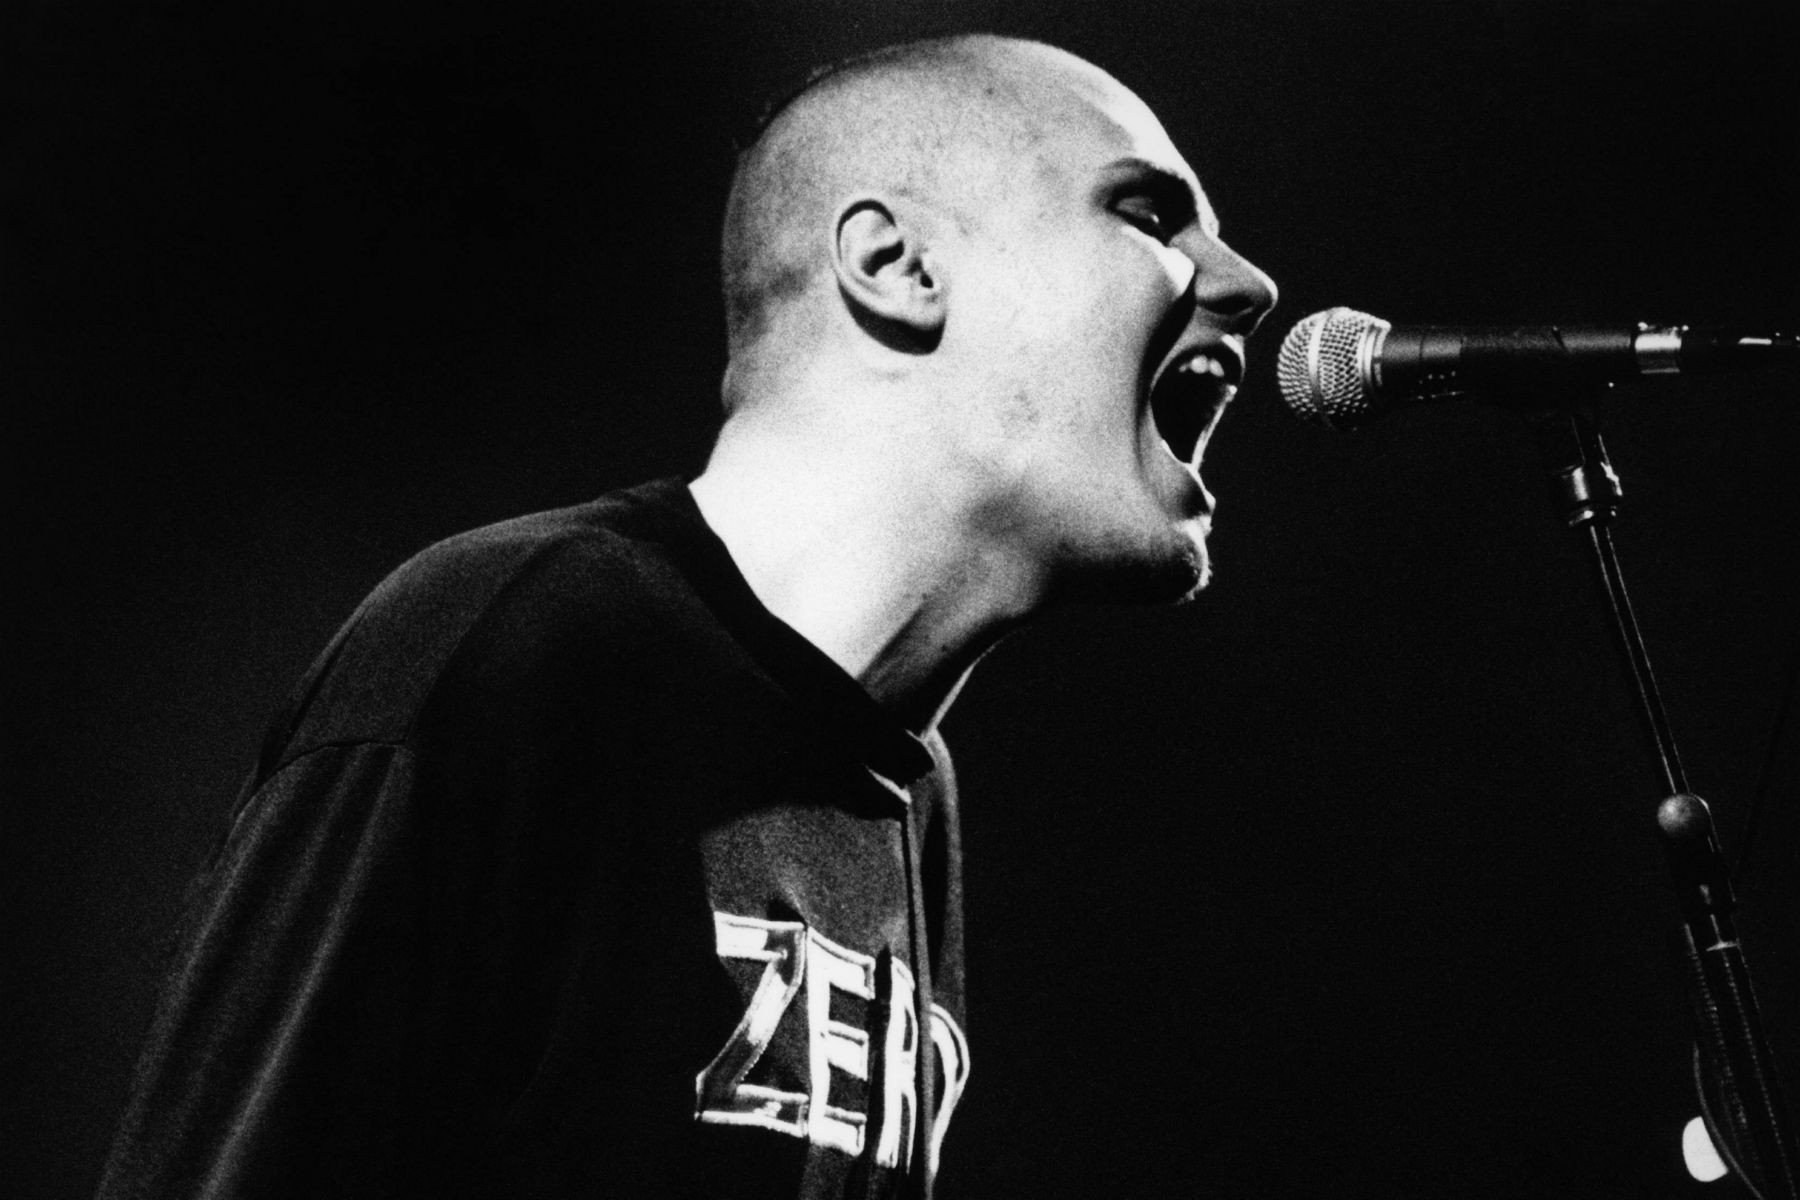 Smashing Pumpkins: SPIN's 1996 'Mellon Collie' Cover Story, 'Zero Worship'